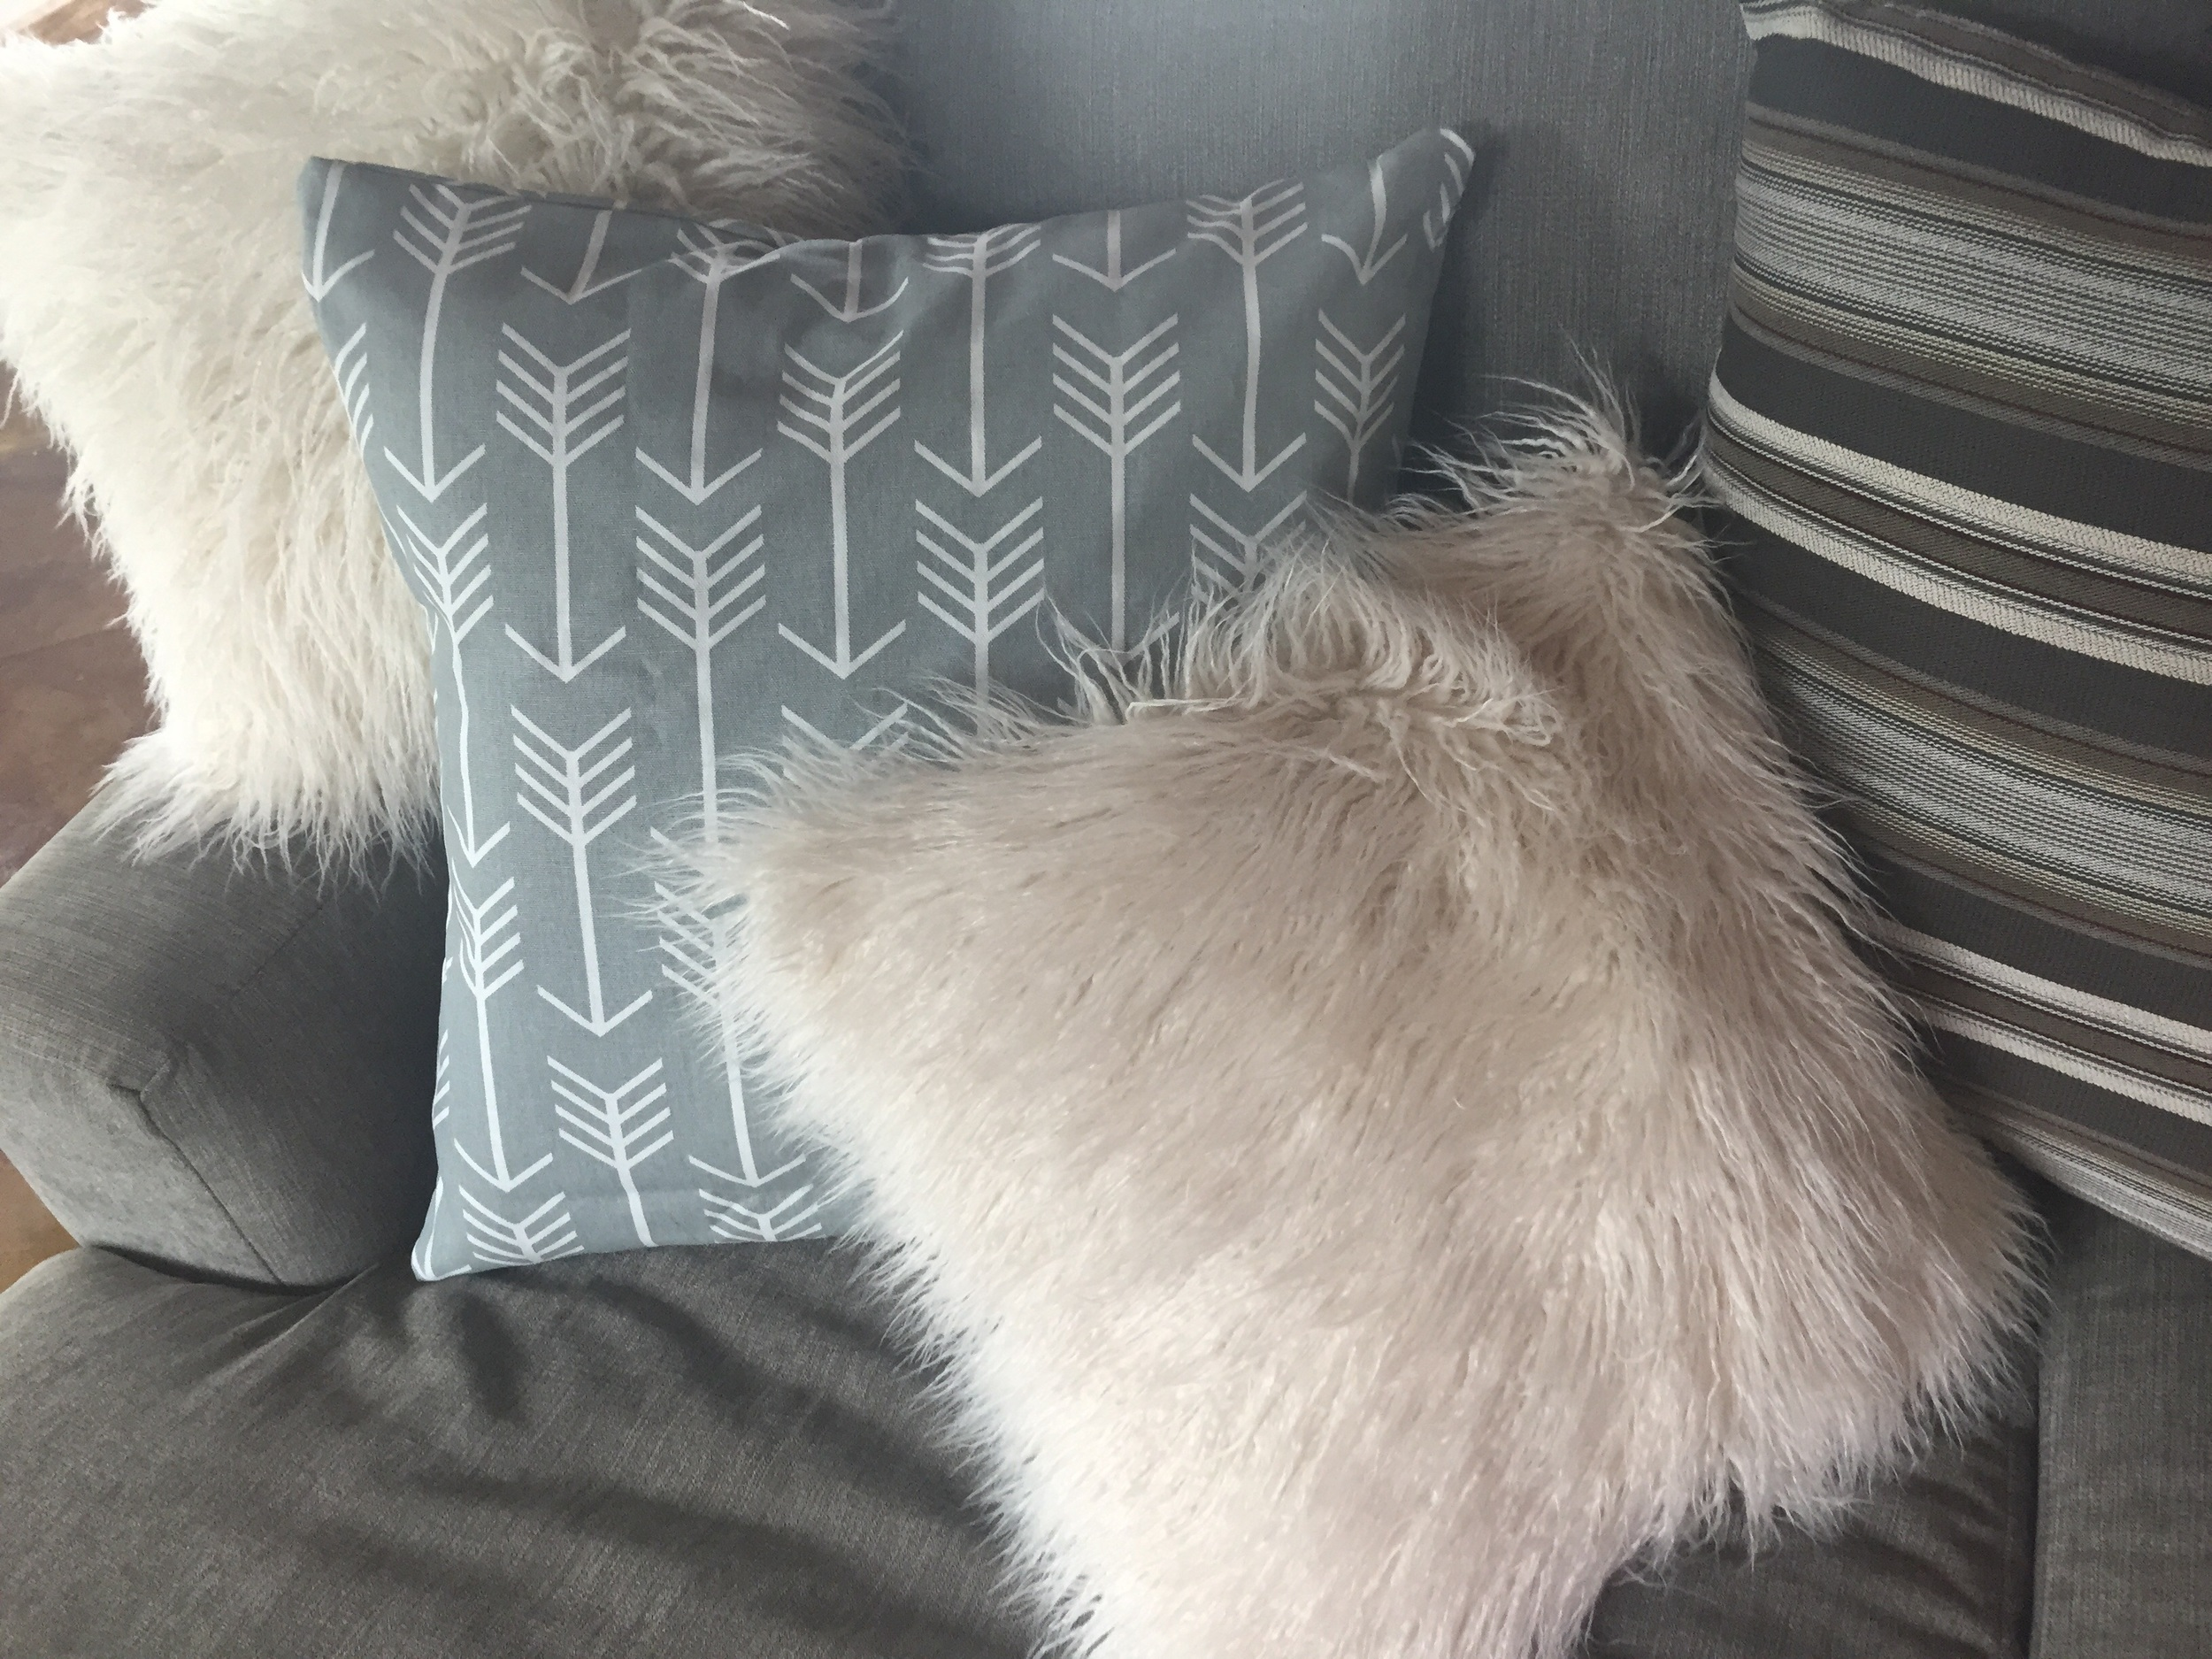 Now my pillows compliment each other and the room nicely!